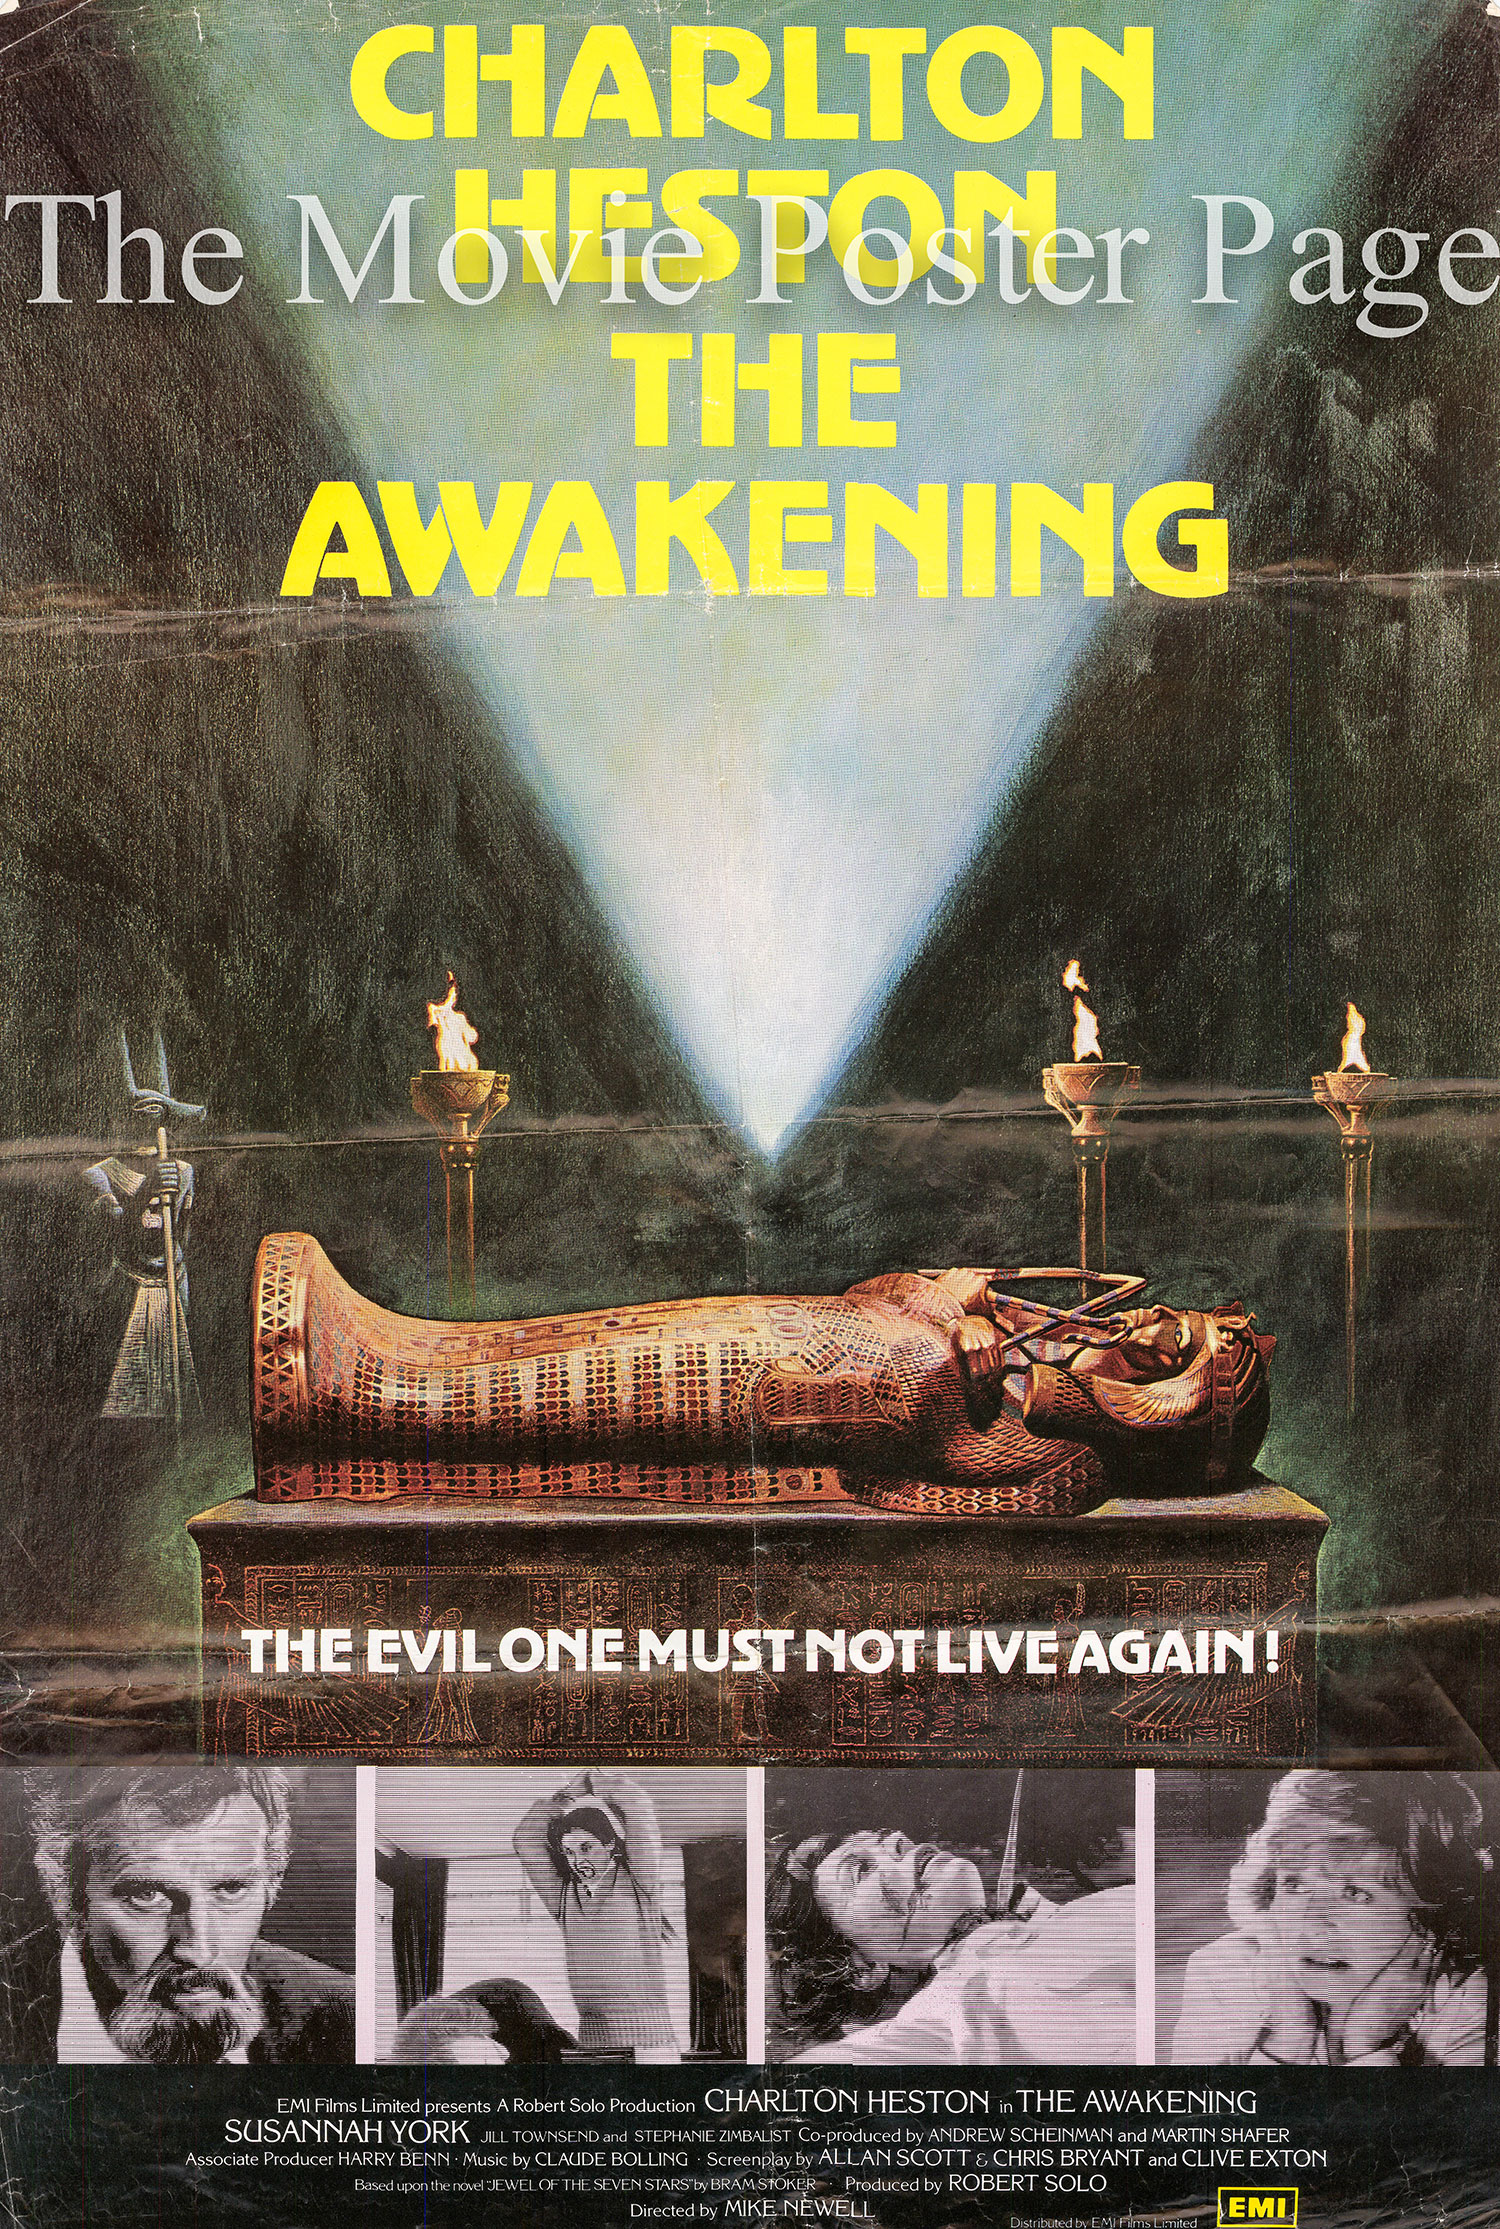 Pictured is a US one-sheet for the 1980 Mike Newell film The Awakening starring Charlton Heston.